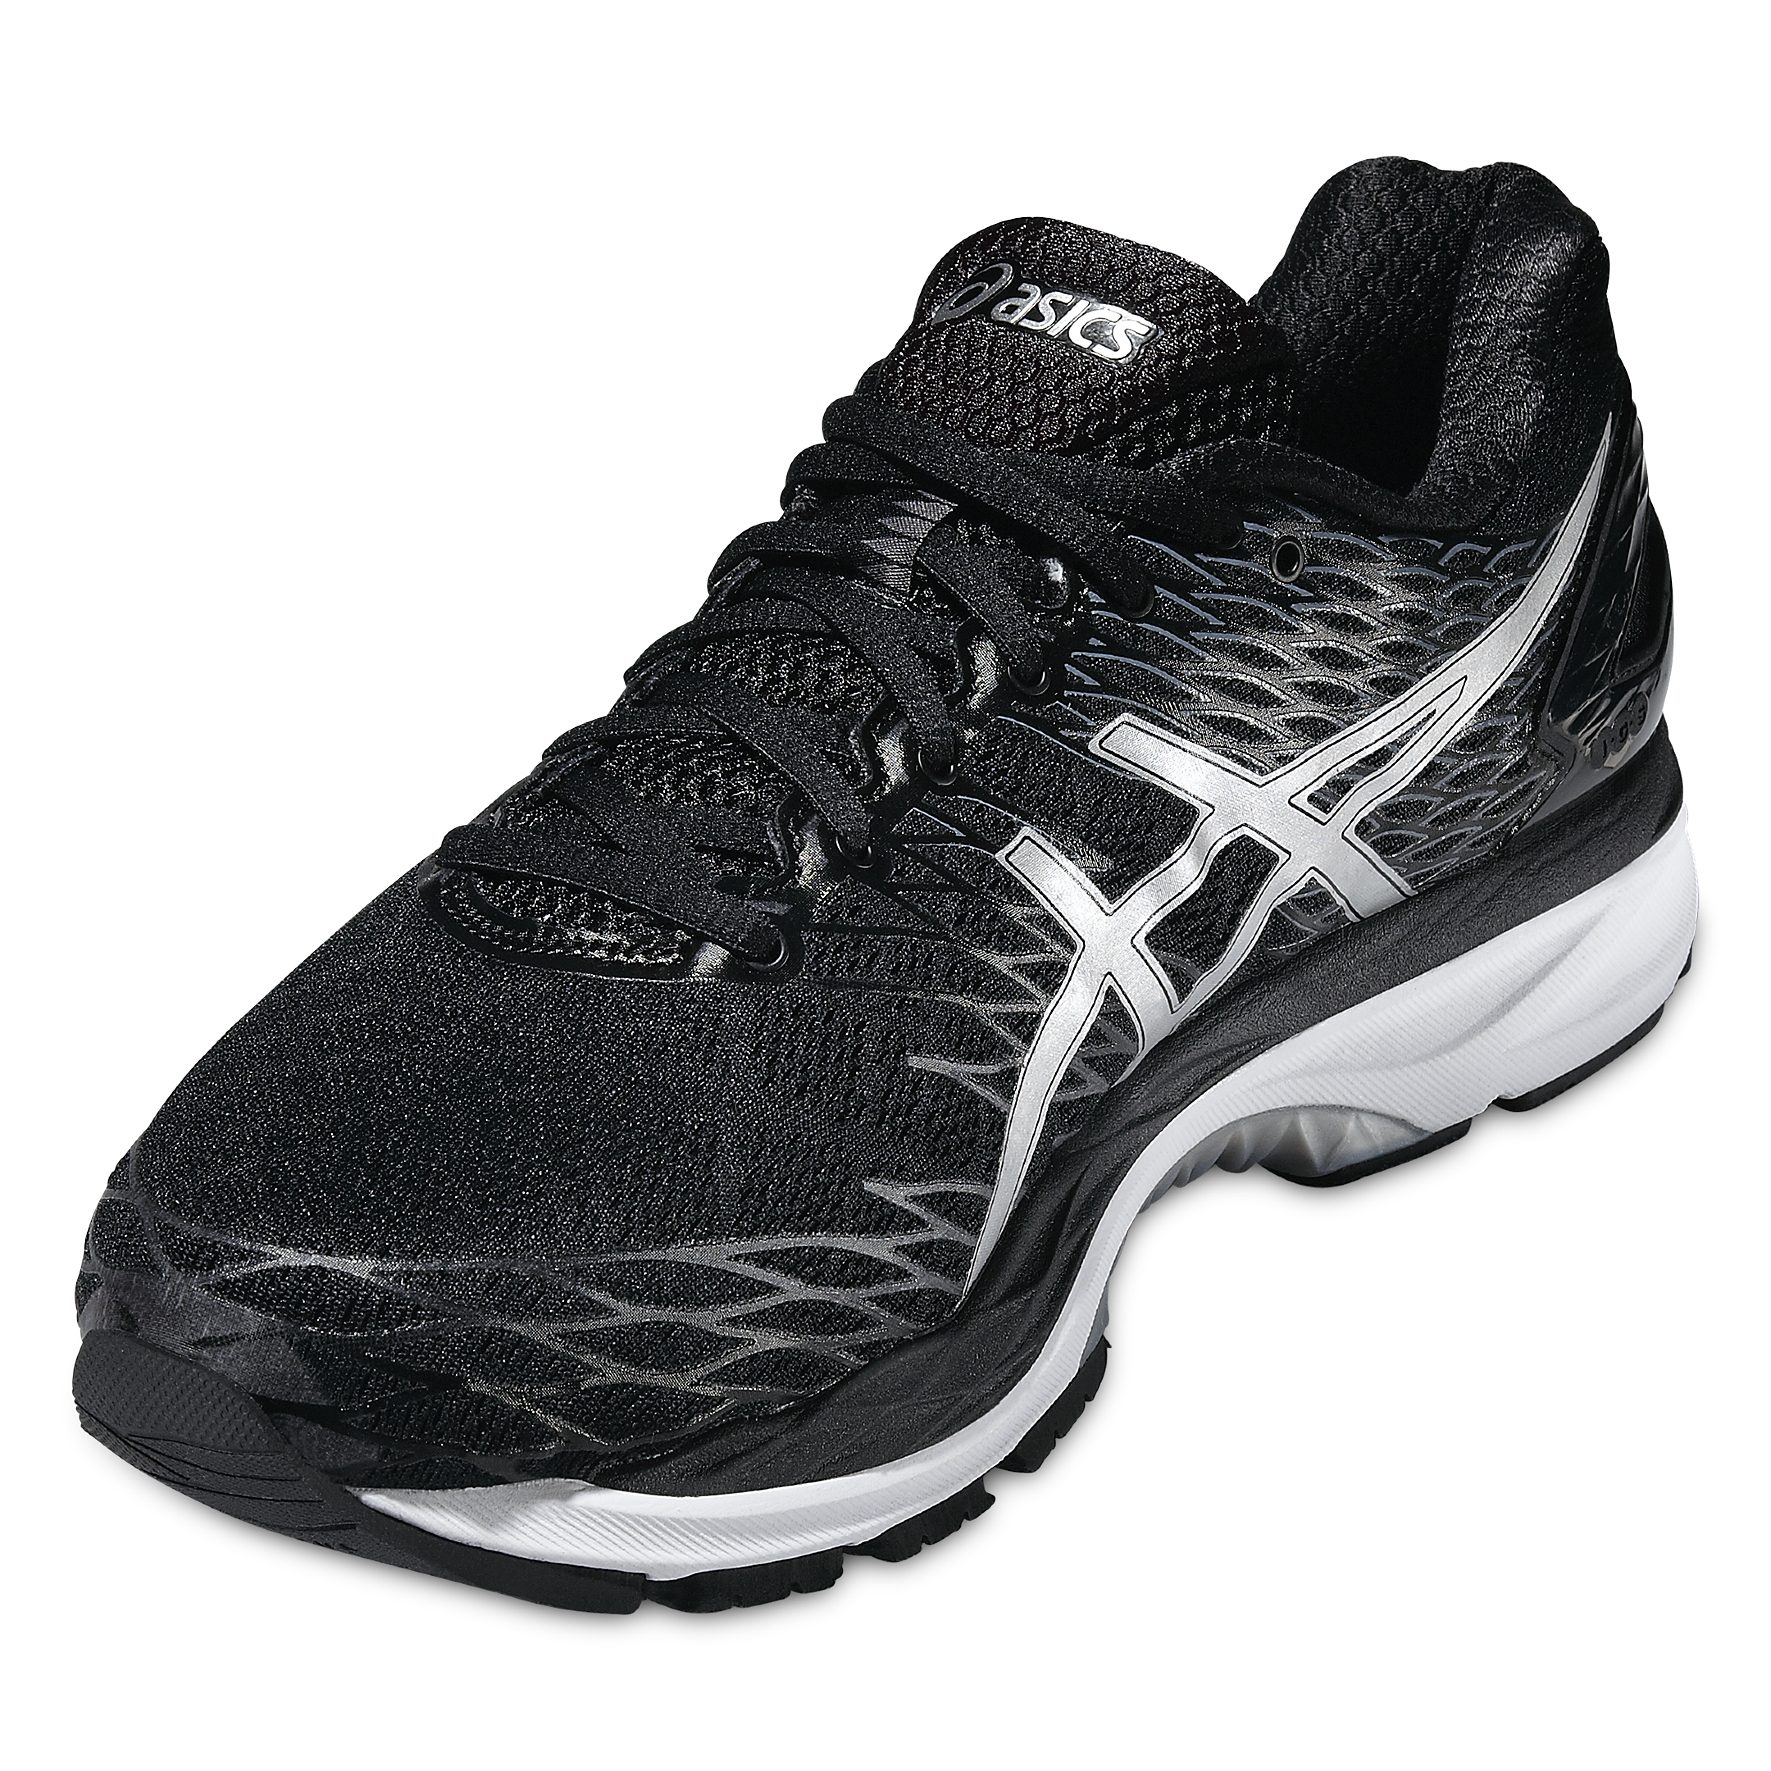 asics Runningschuh »Gel-Nimbus 18 Shoe Men«